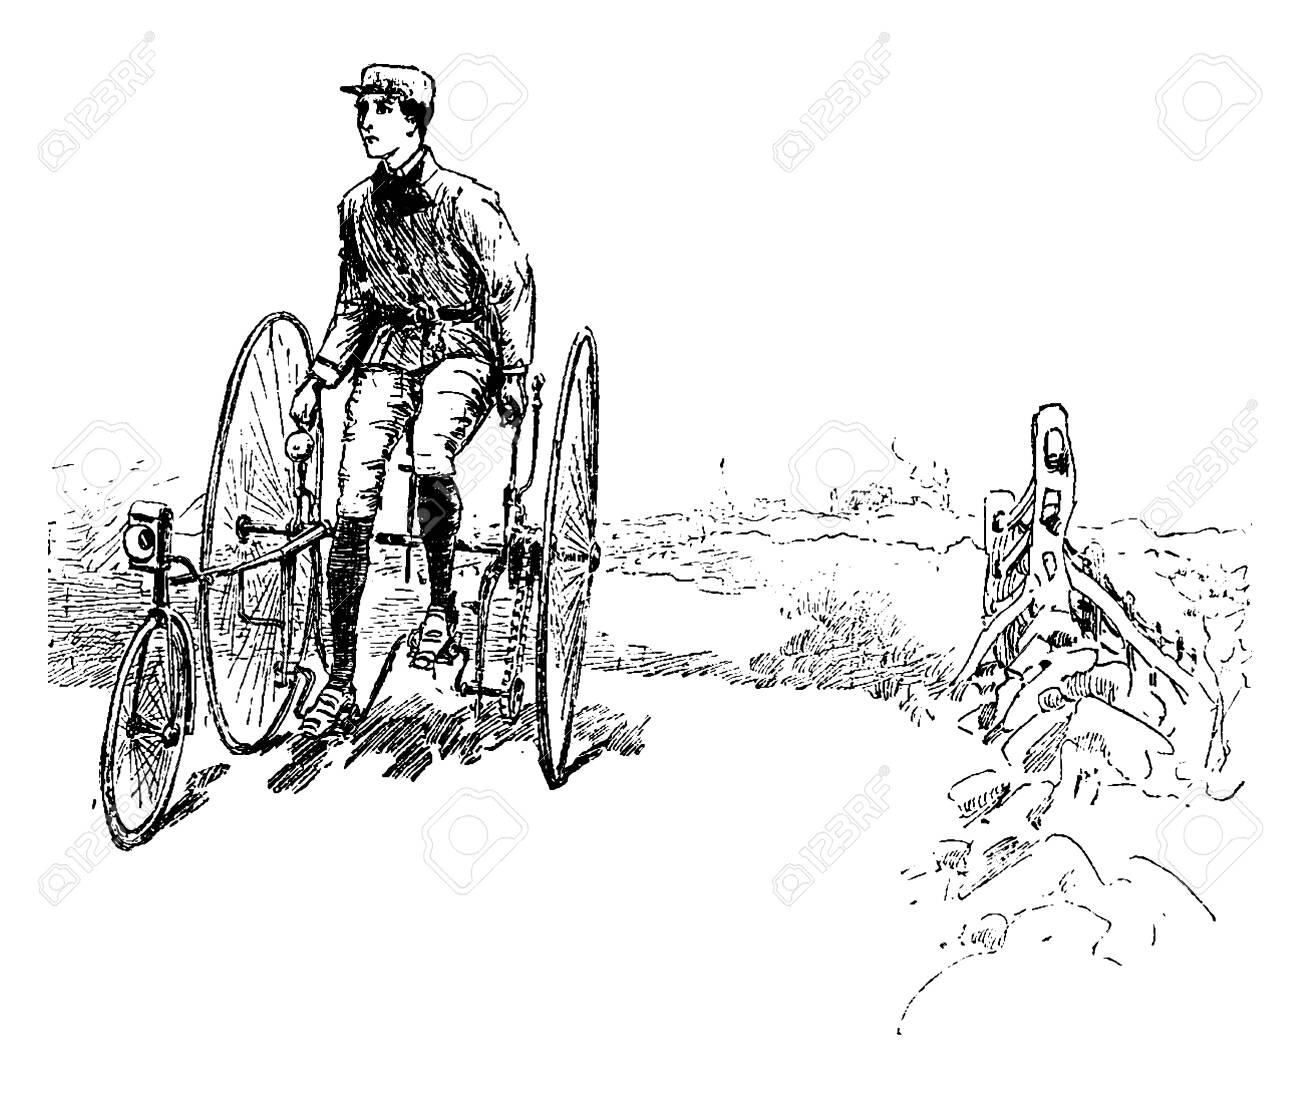 Man On A Tricycle Where A Man Riding A Tricycle And Looking Over Royalty Free Cliparts Vectors And Stock Illustration Image 133239067